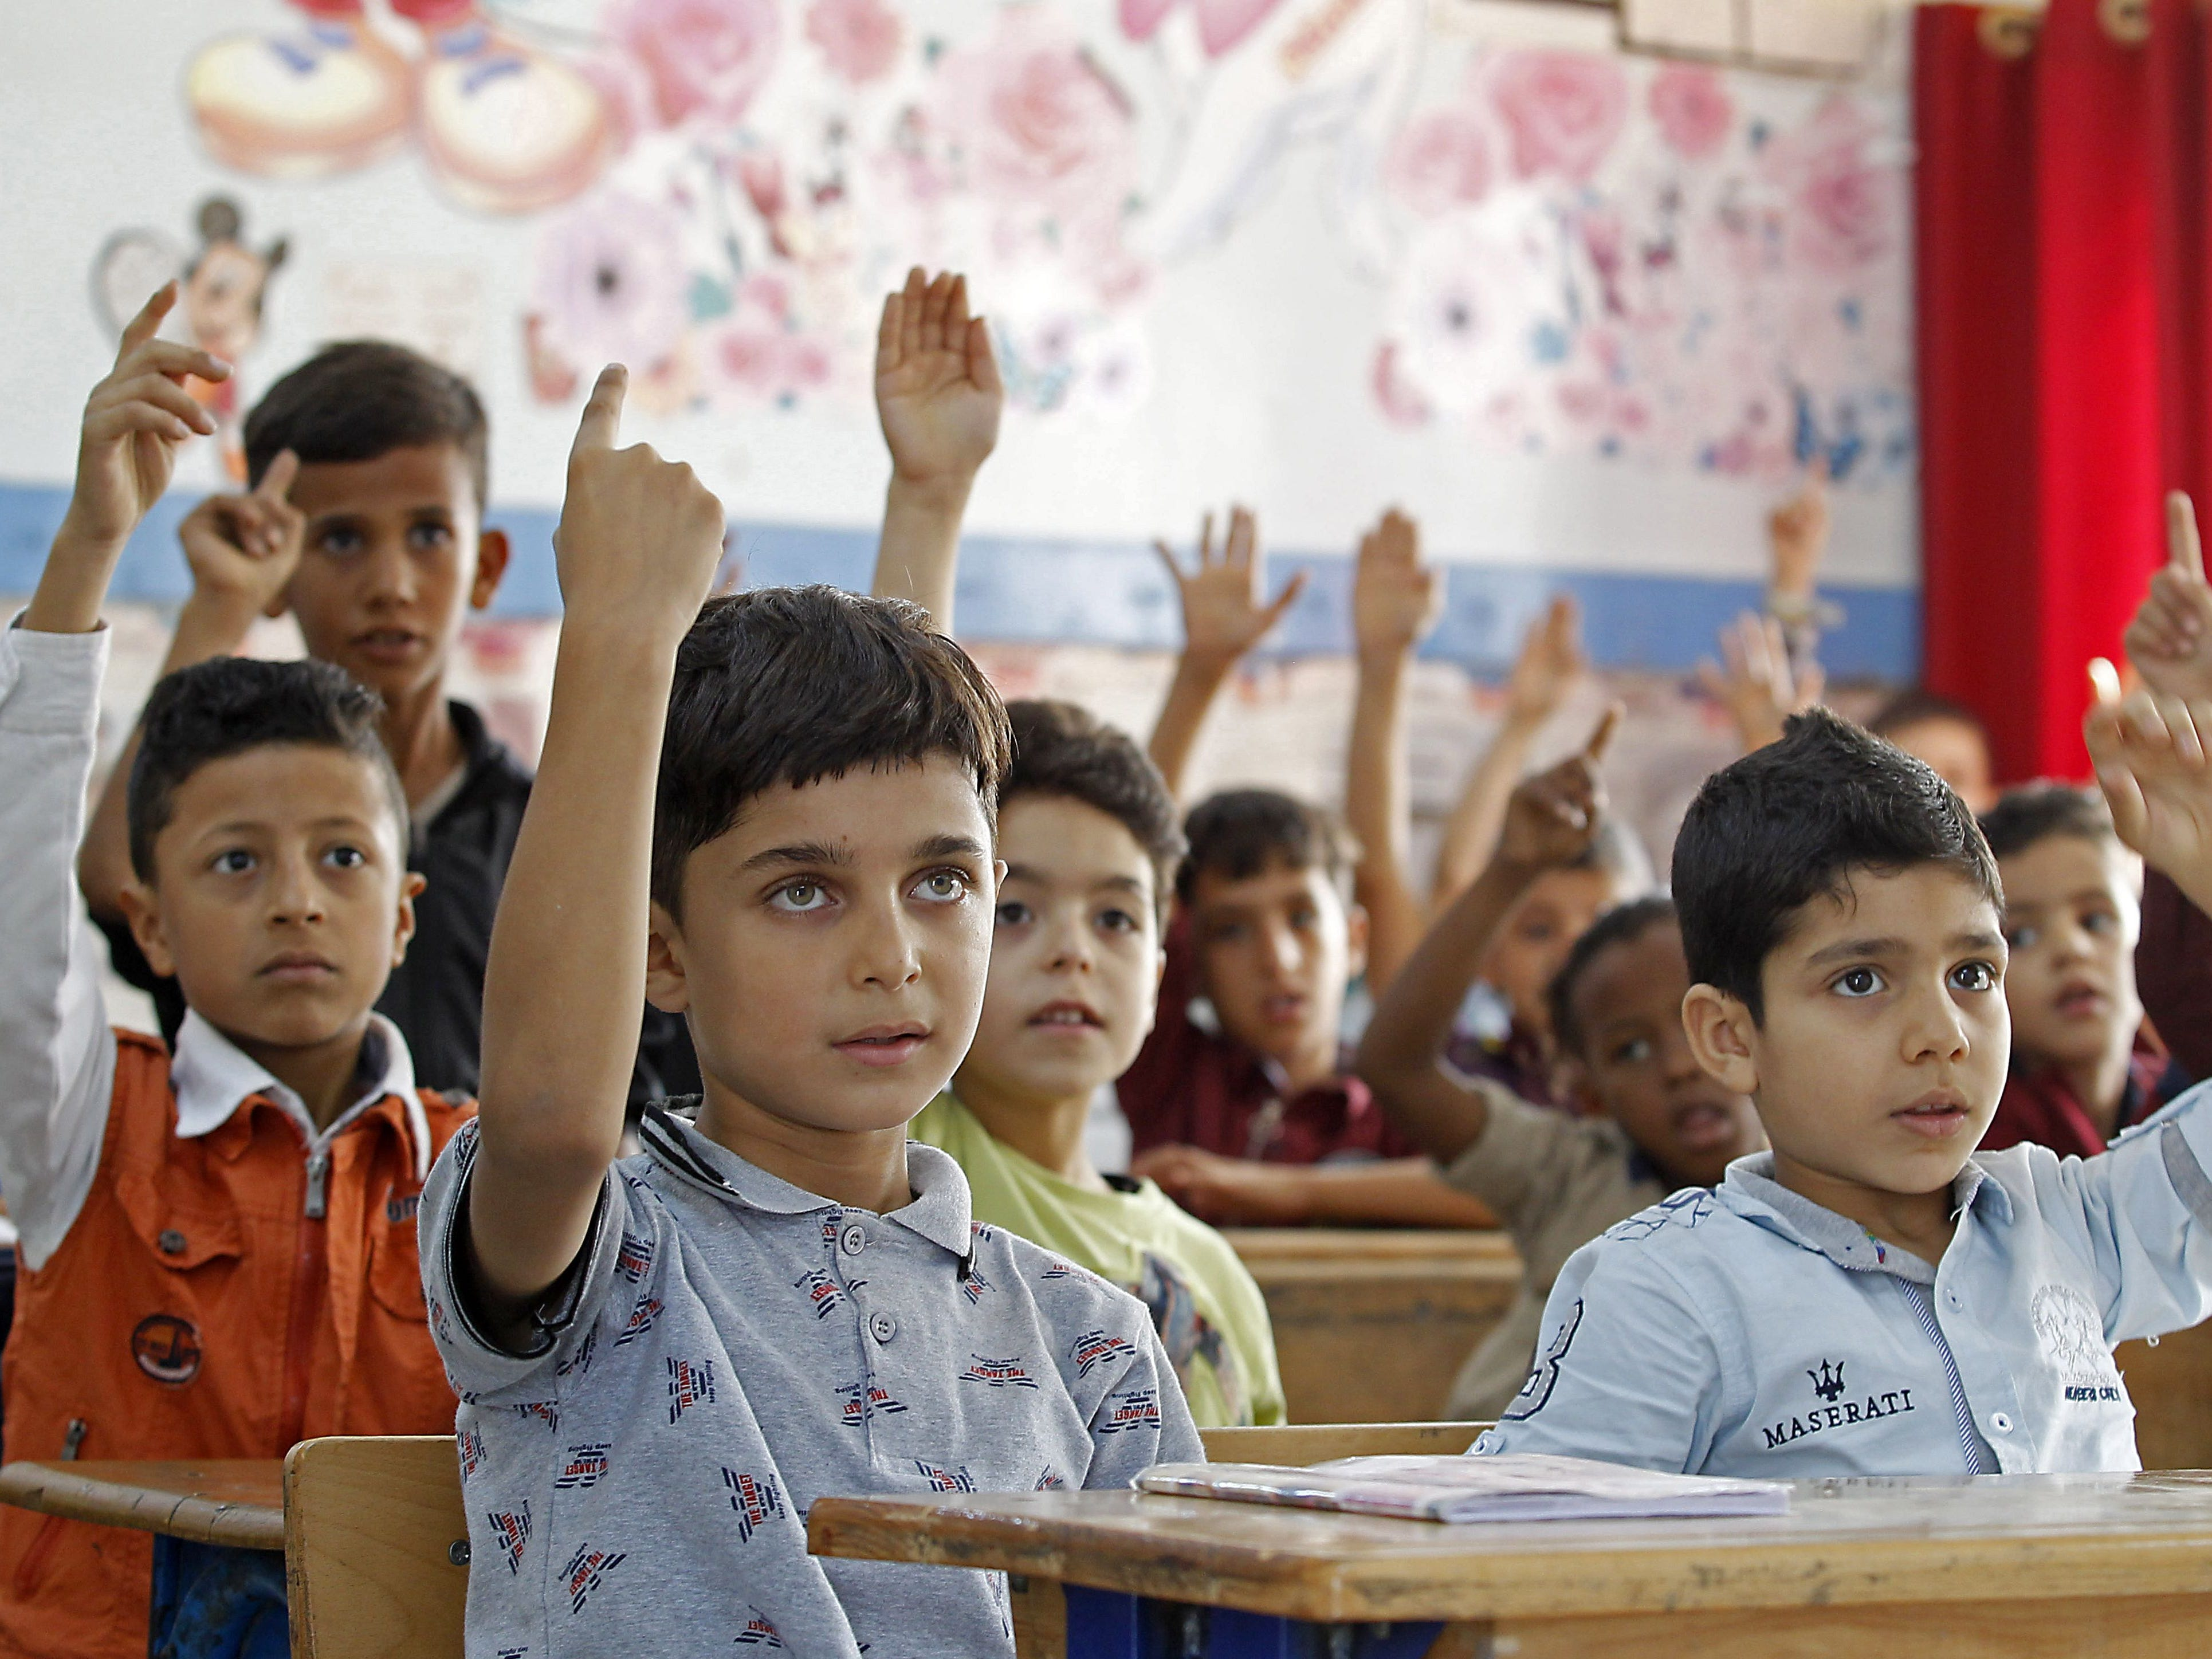 "Palestinian refugee pupils attend a lesson at a United nations Relief and Works Agency's (UNRWA, UN agency for Palestinian refugees) school, in the Al-Baqaa Palestinian refugee camp, near Amman, on 2 september 2018. - The UN agency for Palestinian refugees (UNRWA) has been a lifeline for millions of Palestinians since it was set up nearly 70 years ago. On August 31, the United States, by far the biggest contributor to the agency, announced it was halting its funding to the organisation, which it labelled ""irredeemably flawed"". (Photo by AHMAD ABDO / AFP)AHMAD ABDO/AFP/Getty Images ORIG FILE ID: AFP_18S64M"